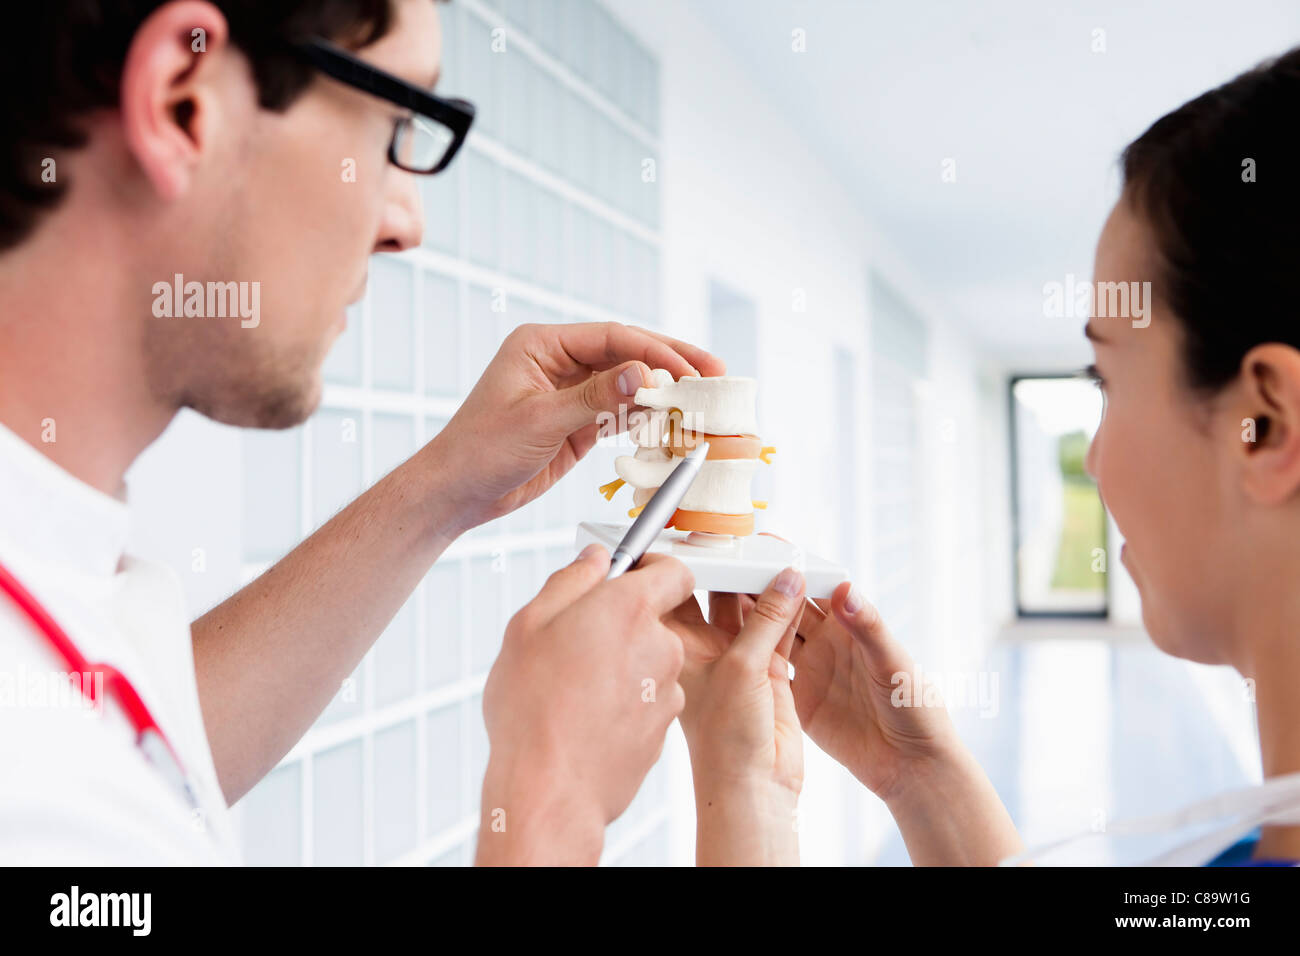 Germany, Bavaria, Diessen am Ammersee, Two young doctors examining medical procedure - Stock Image